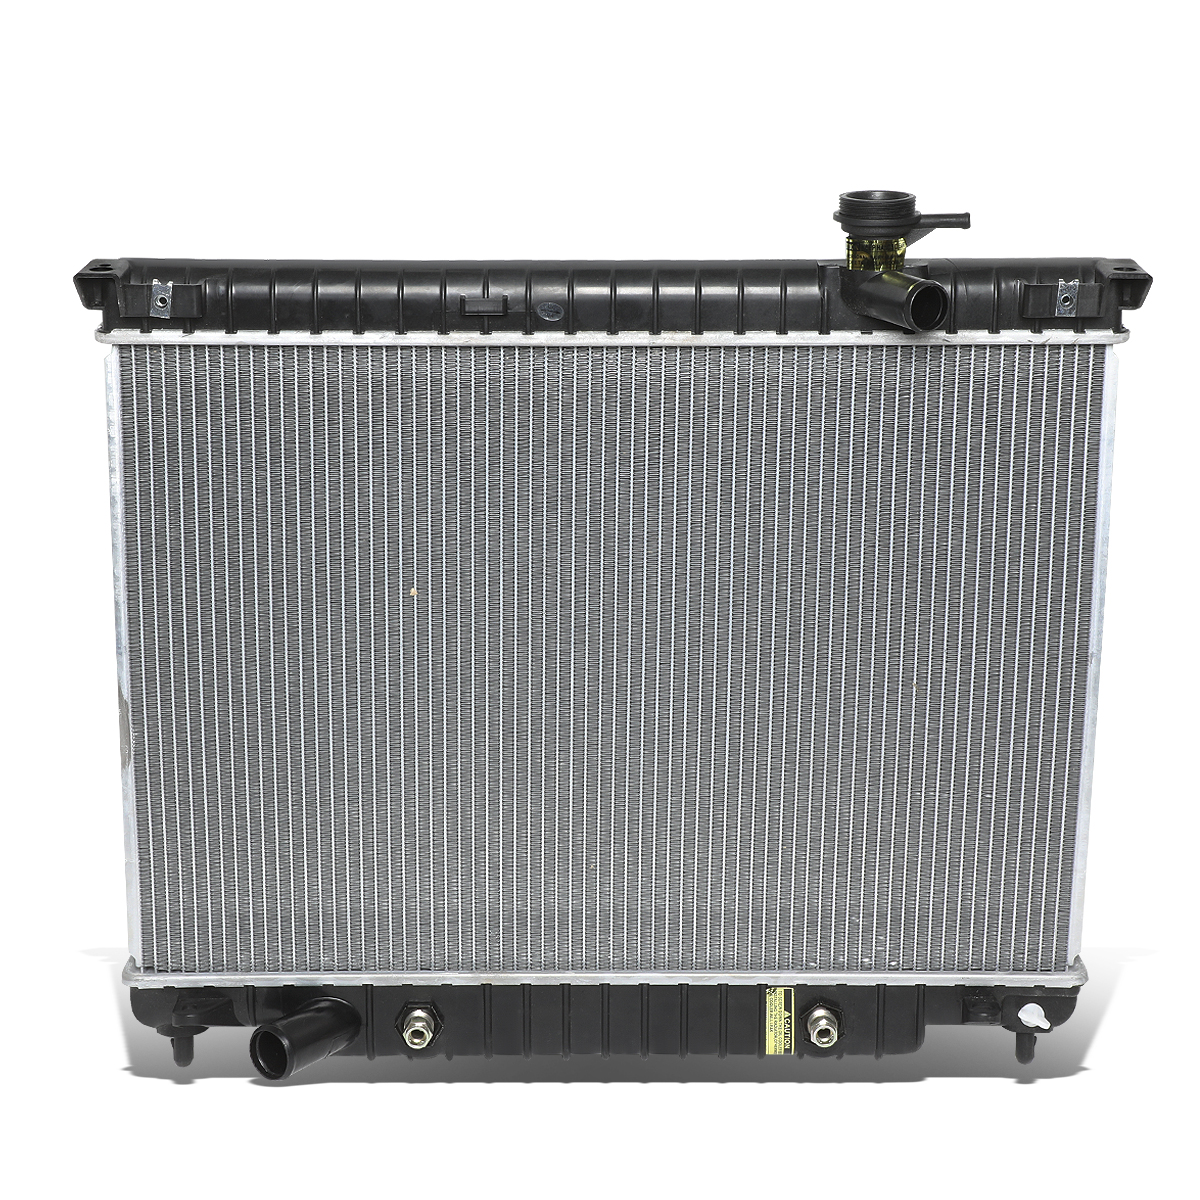 2458 Radiator For Chevy Trailblazer GMC Envoy Isuzu Ascender Buick Rainier 4.2